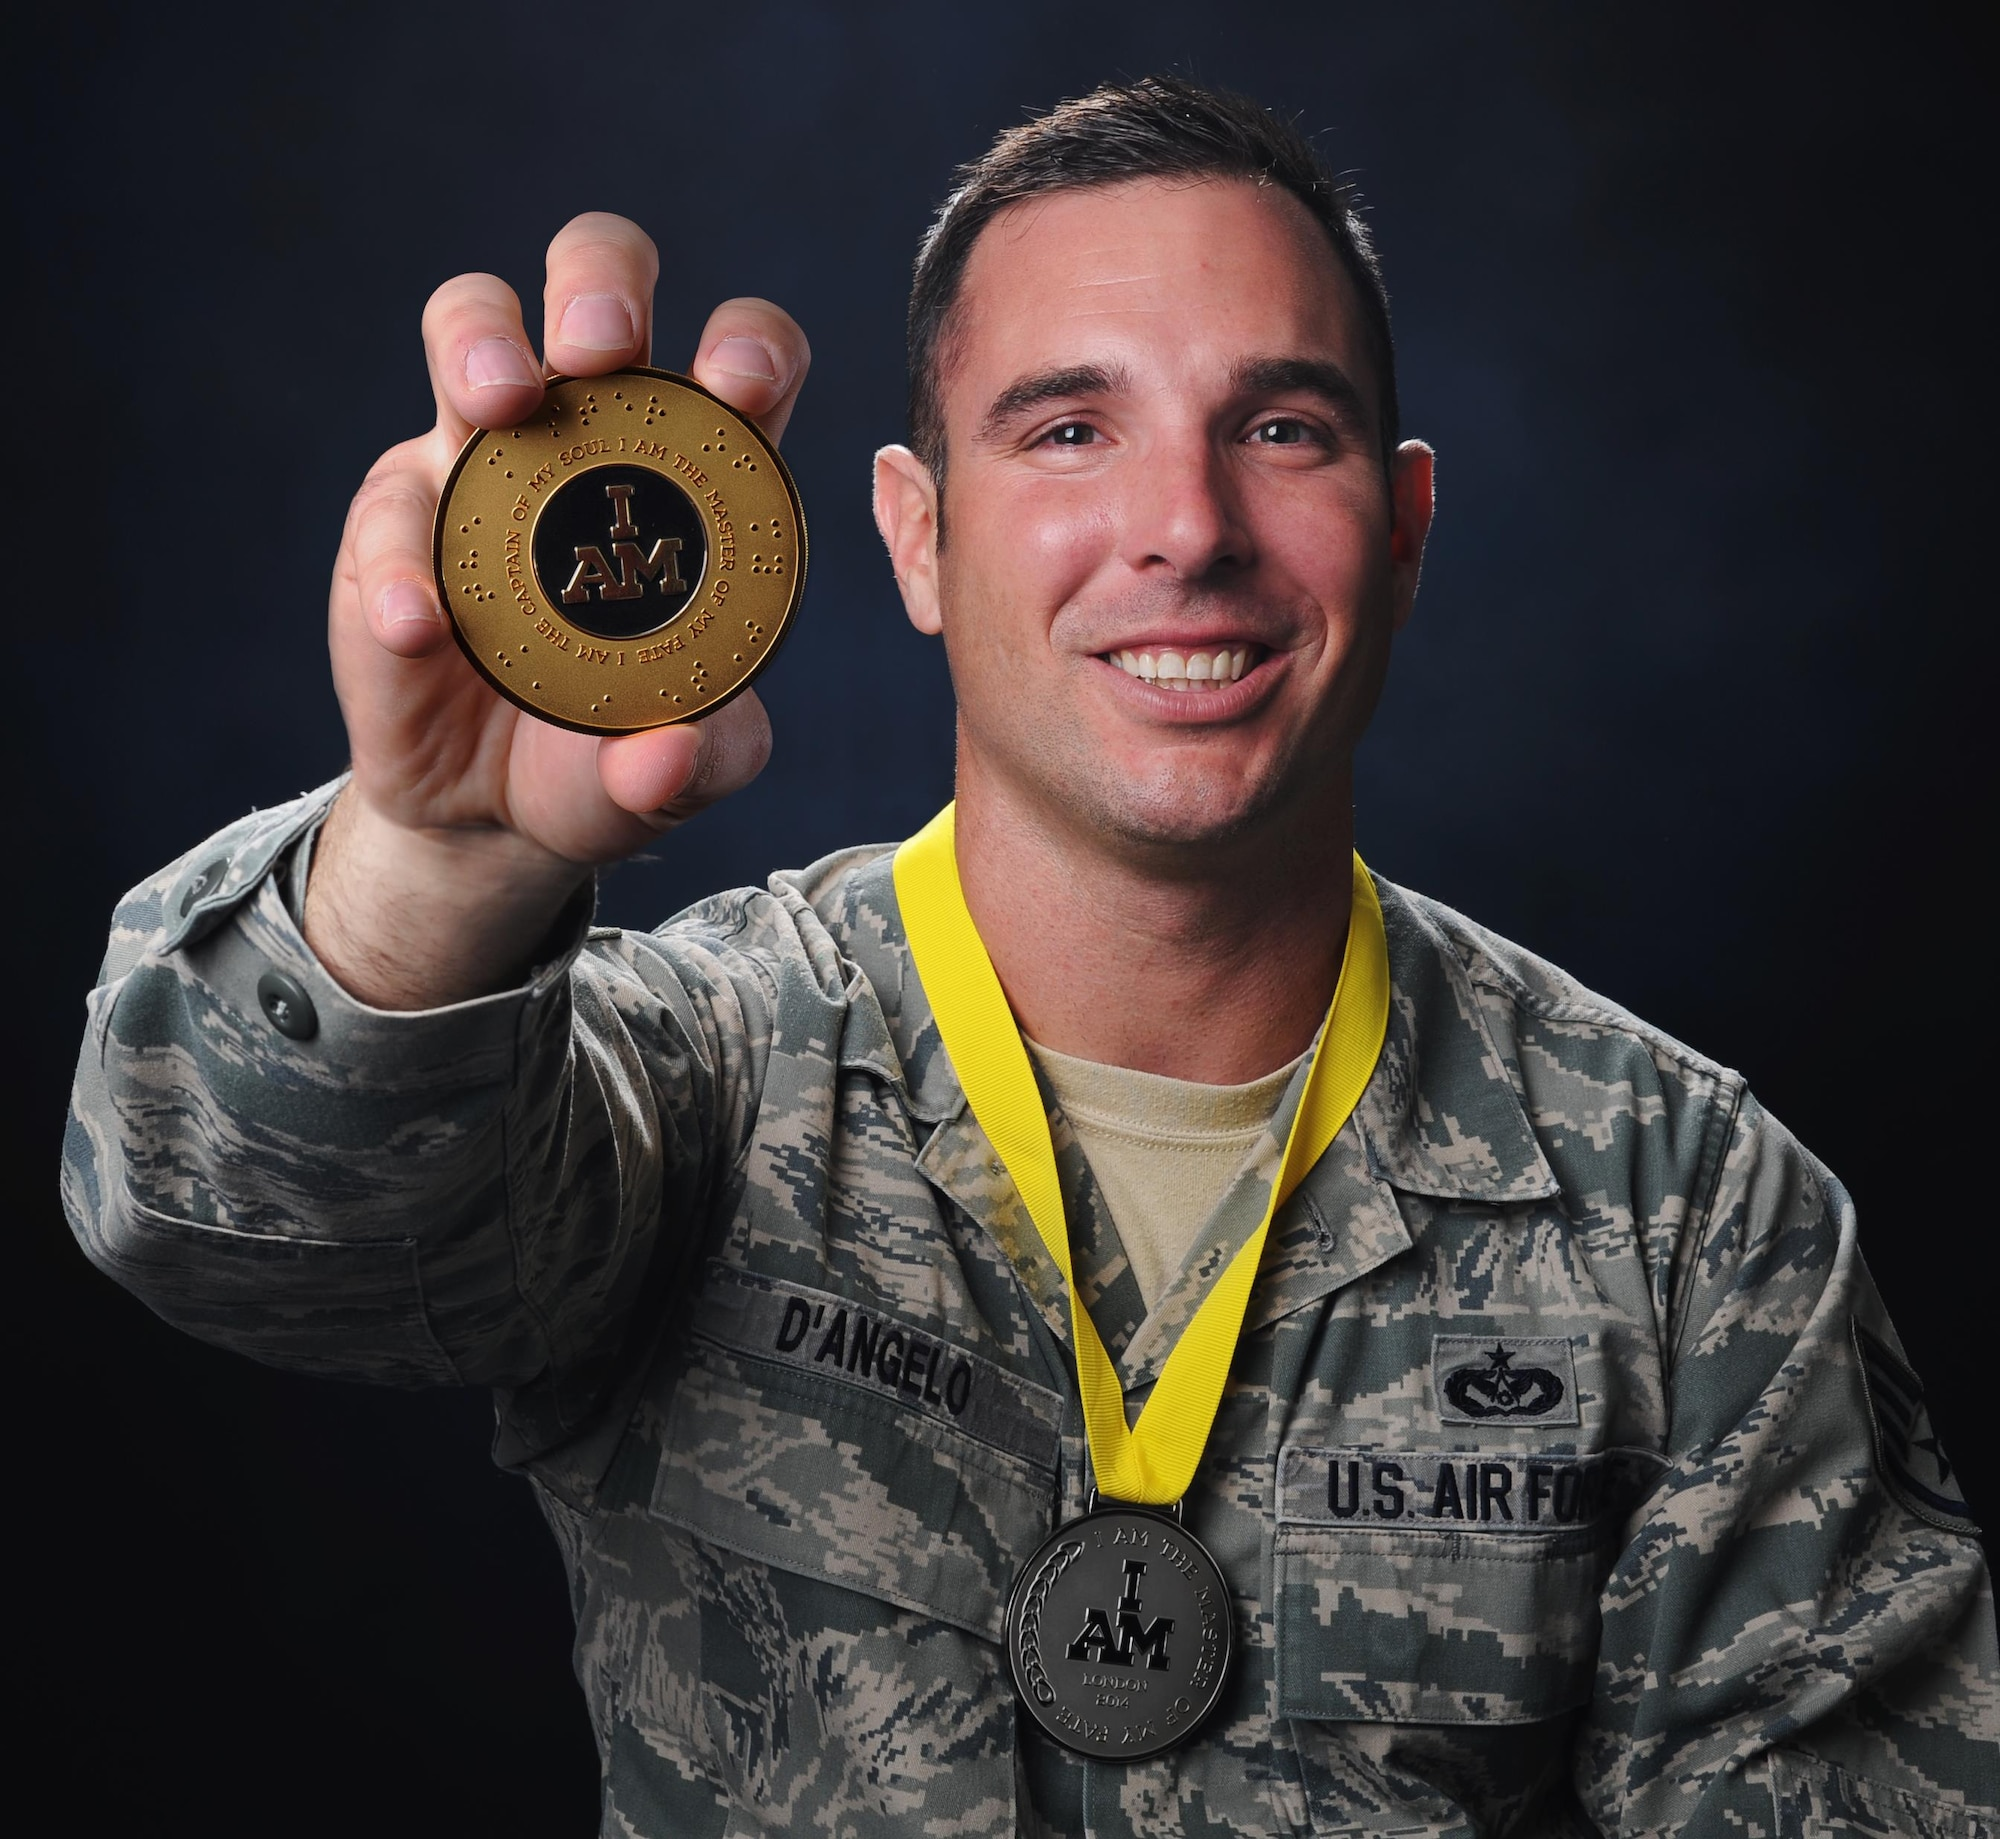 Senior Airman Christopher D'Angelo, a heavy equipment operator, has worked to recover from post-traumatic stress disorder with the help of his family.